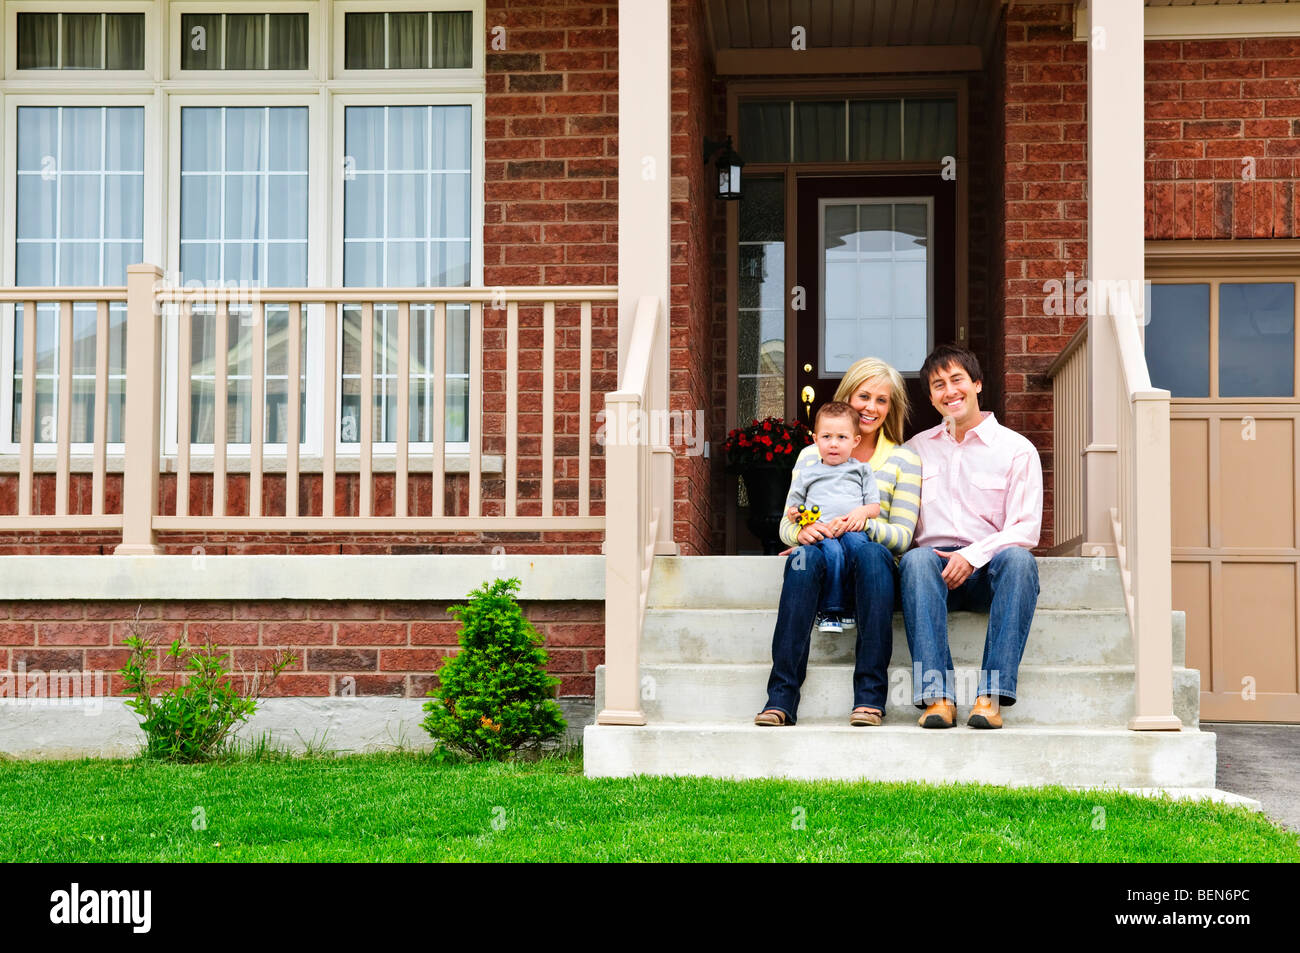 Young family sitting on front steps of house - Stock Image